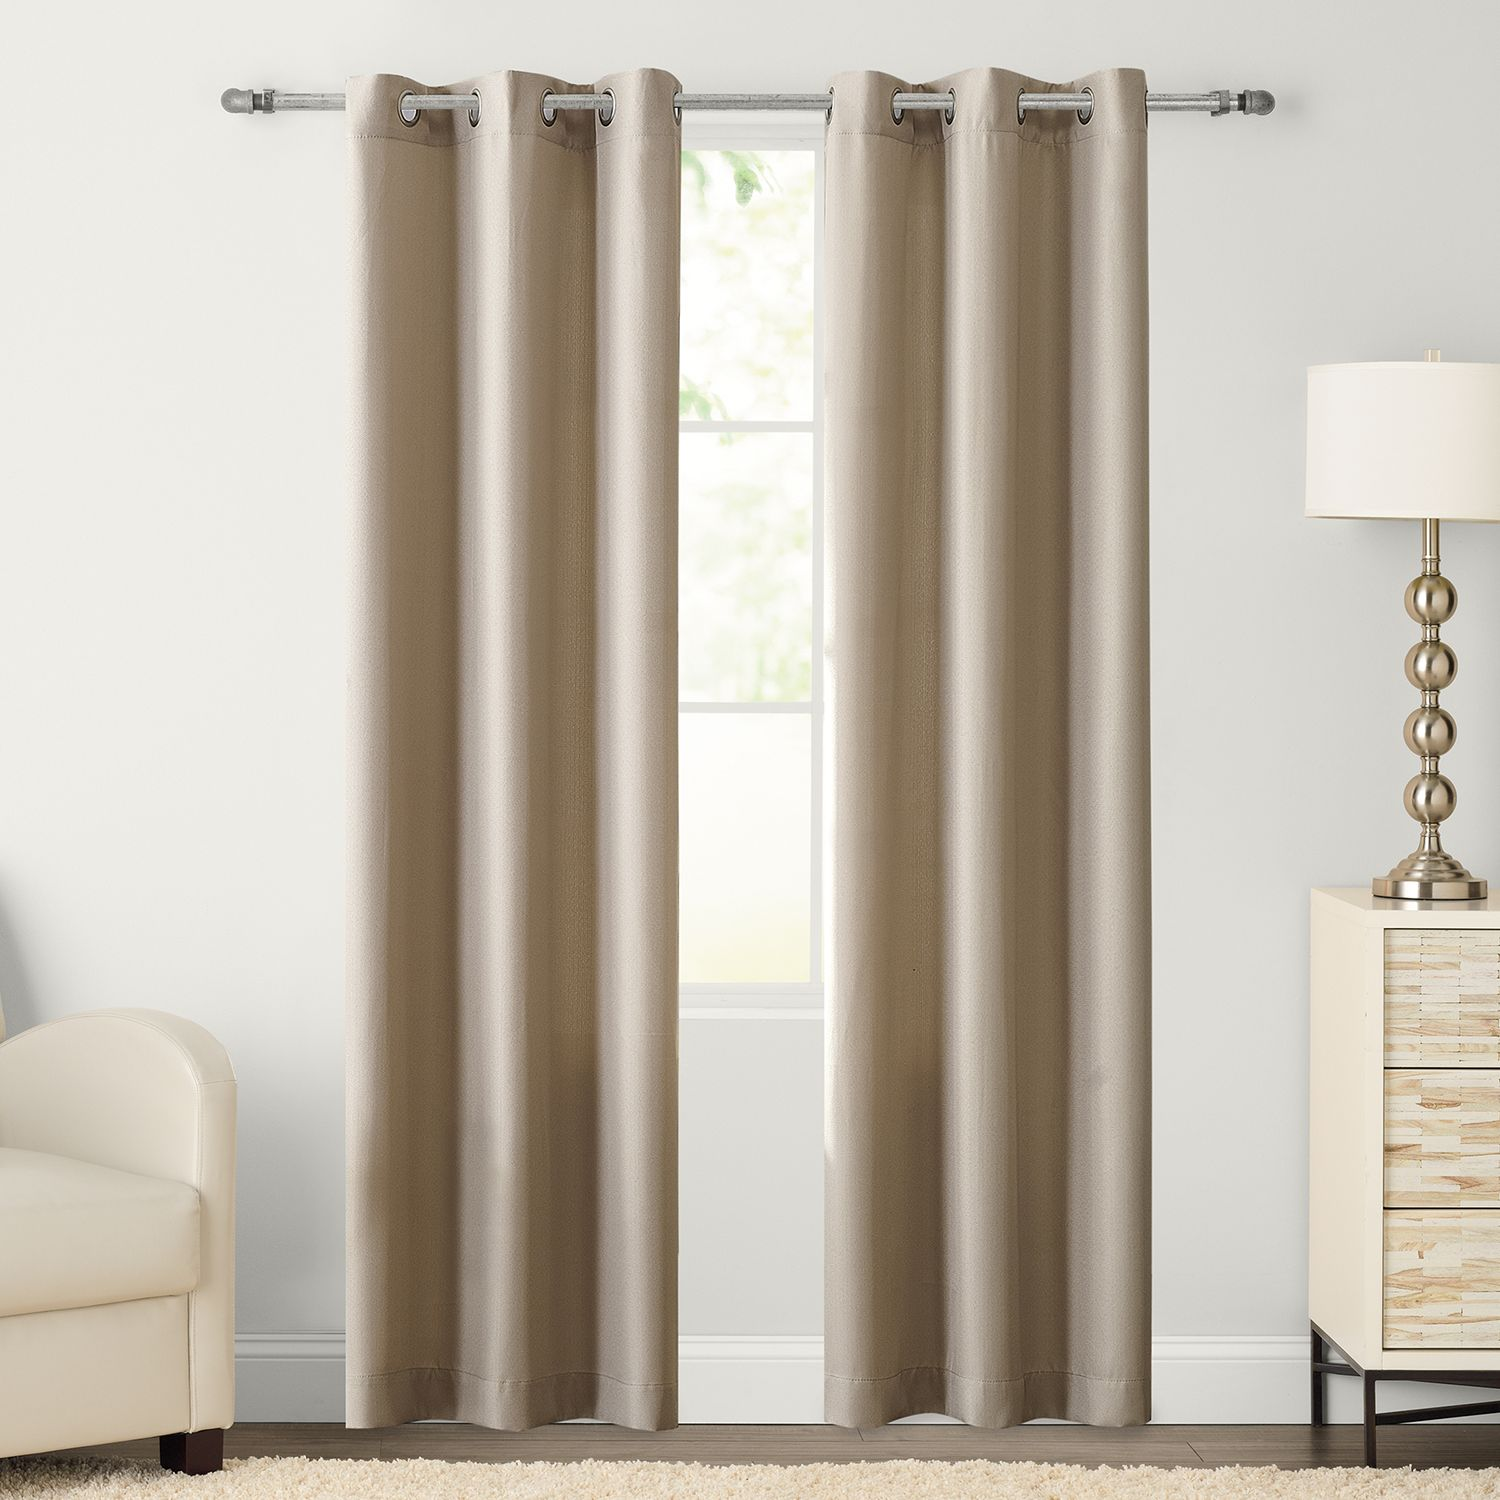 Bon The Big One® 2 Pack Decorative Solid Window Curtains